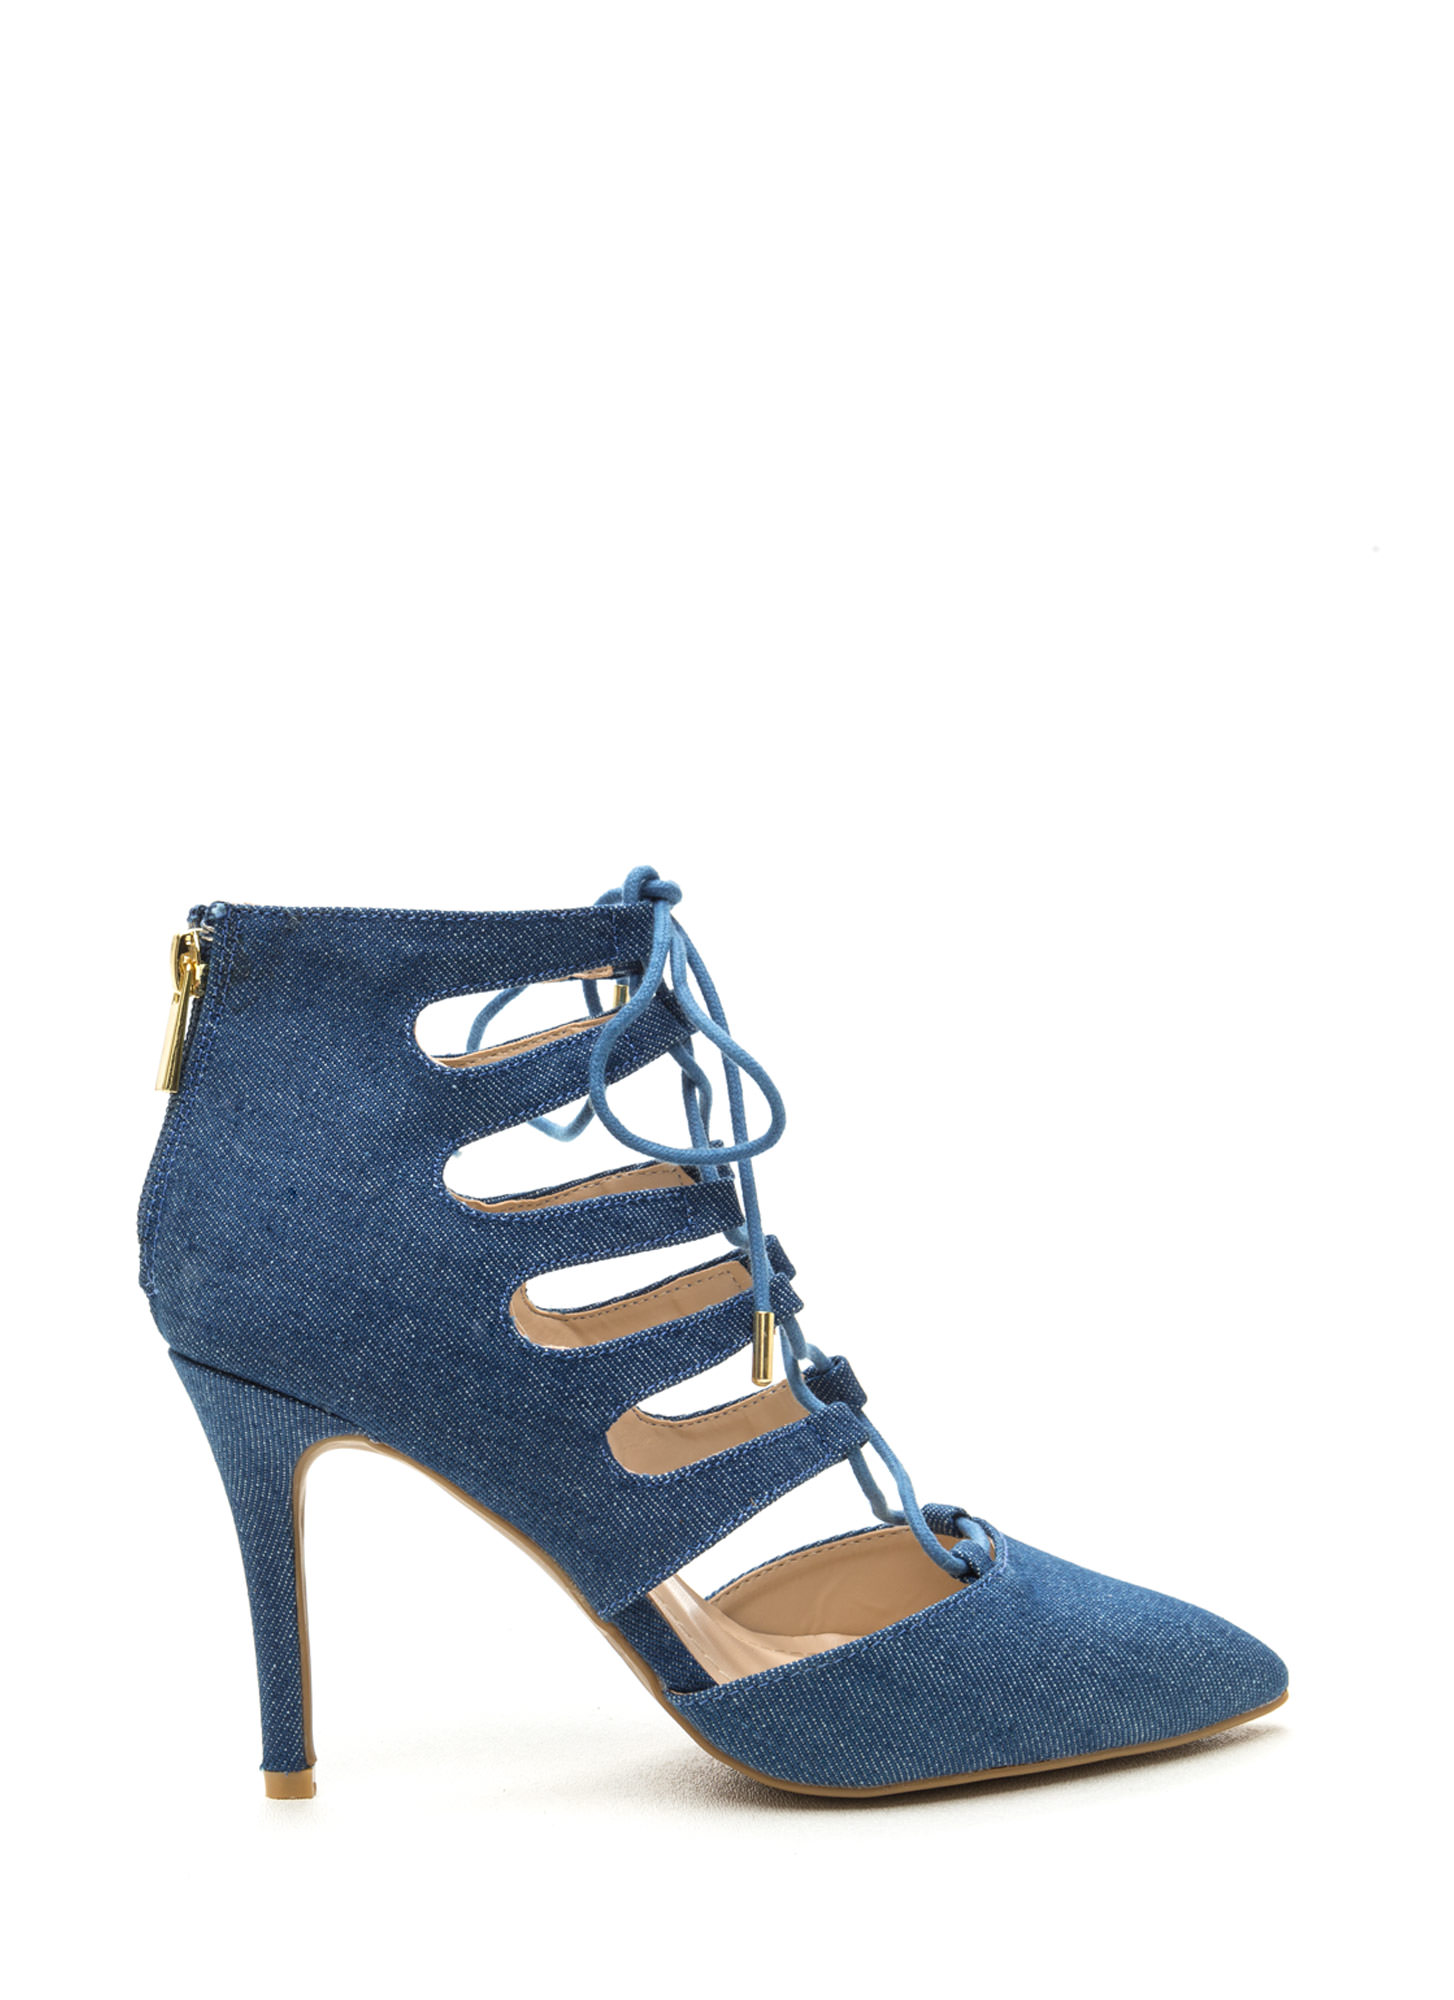 Navy Blue Strappy Heels - Is Heel